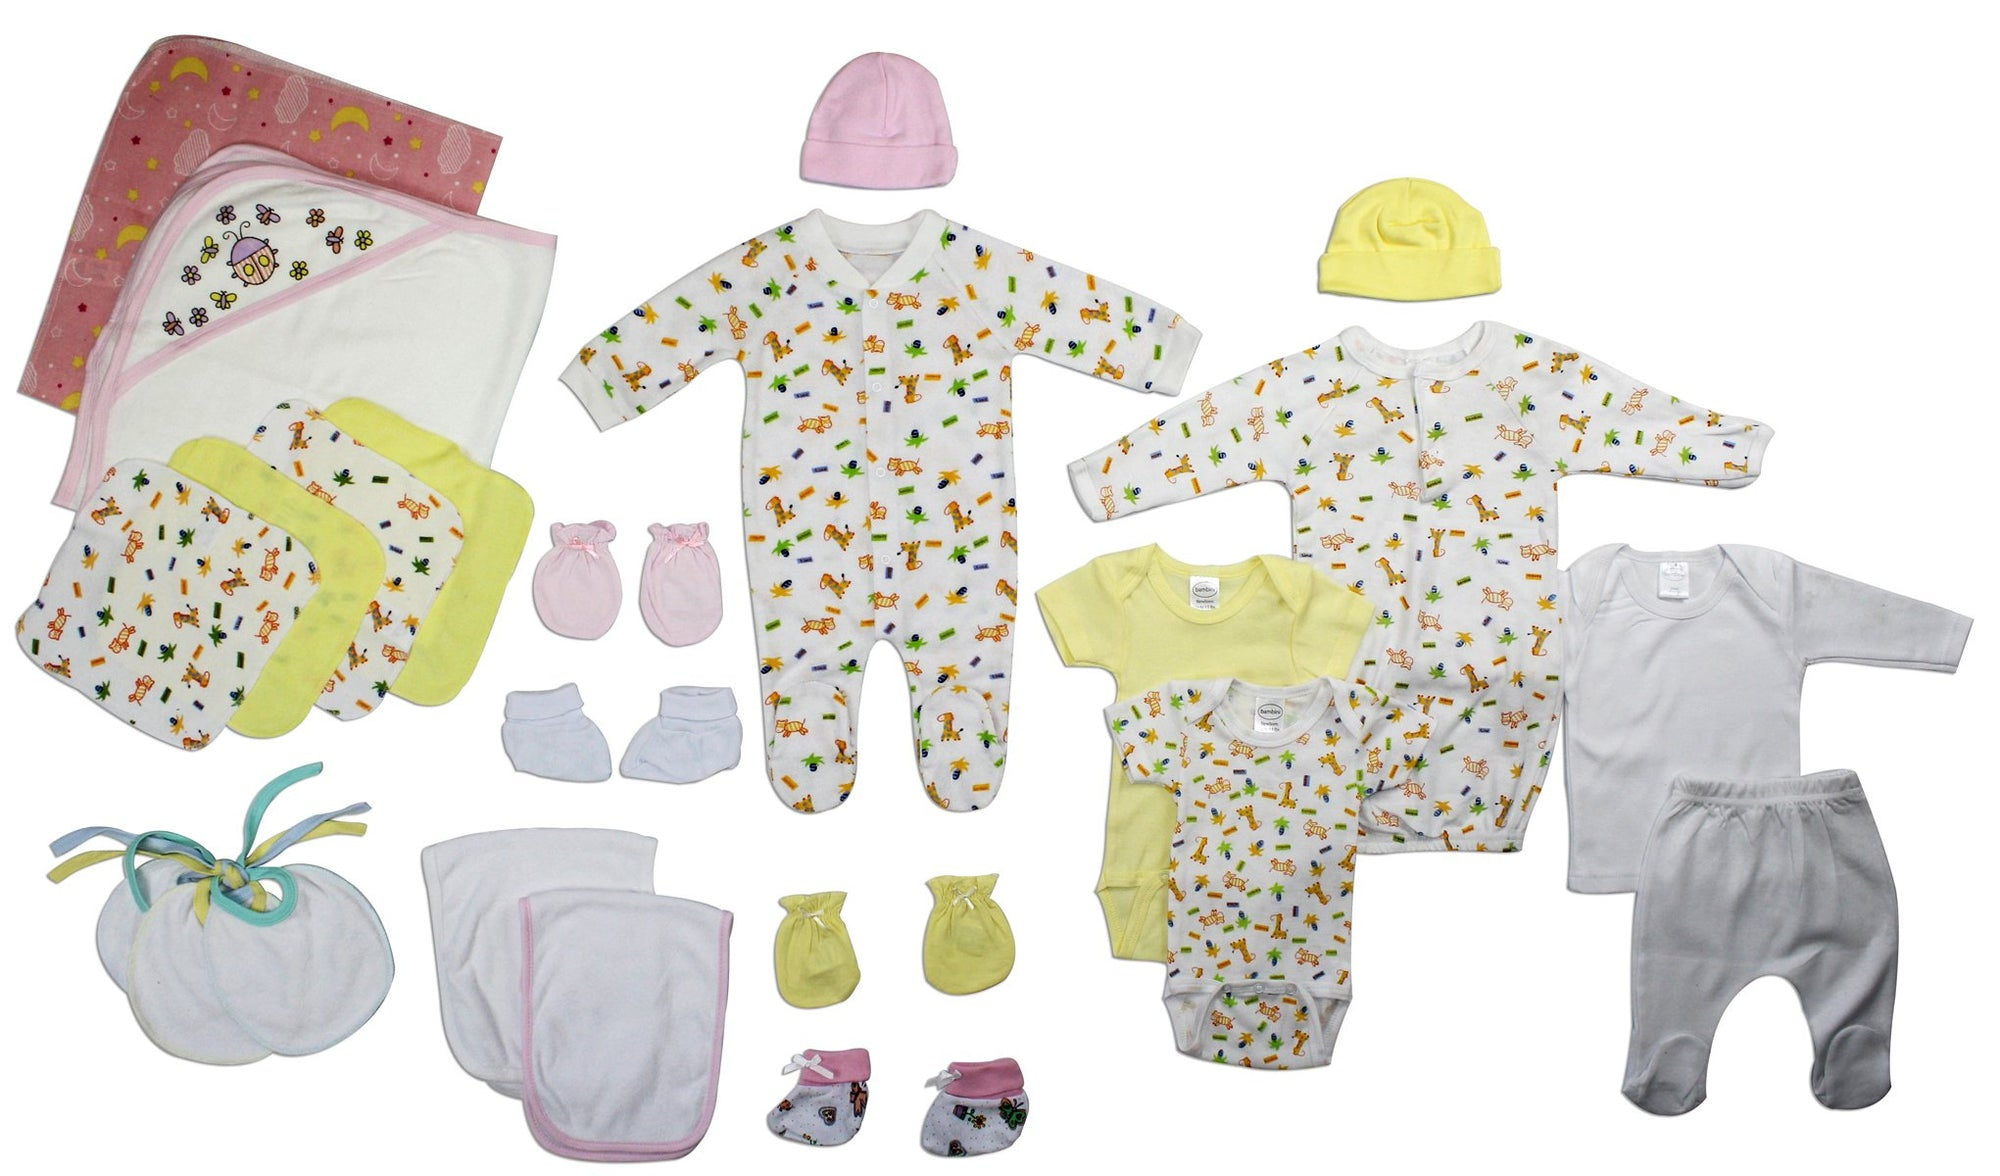 Bambini Newborn Baby Girl 23 Pcs Layette Baby Shower Gift Set - Baby World Inc